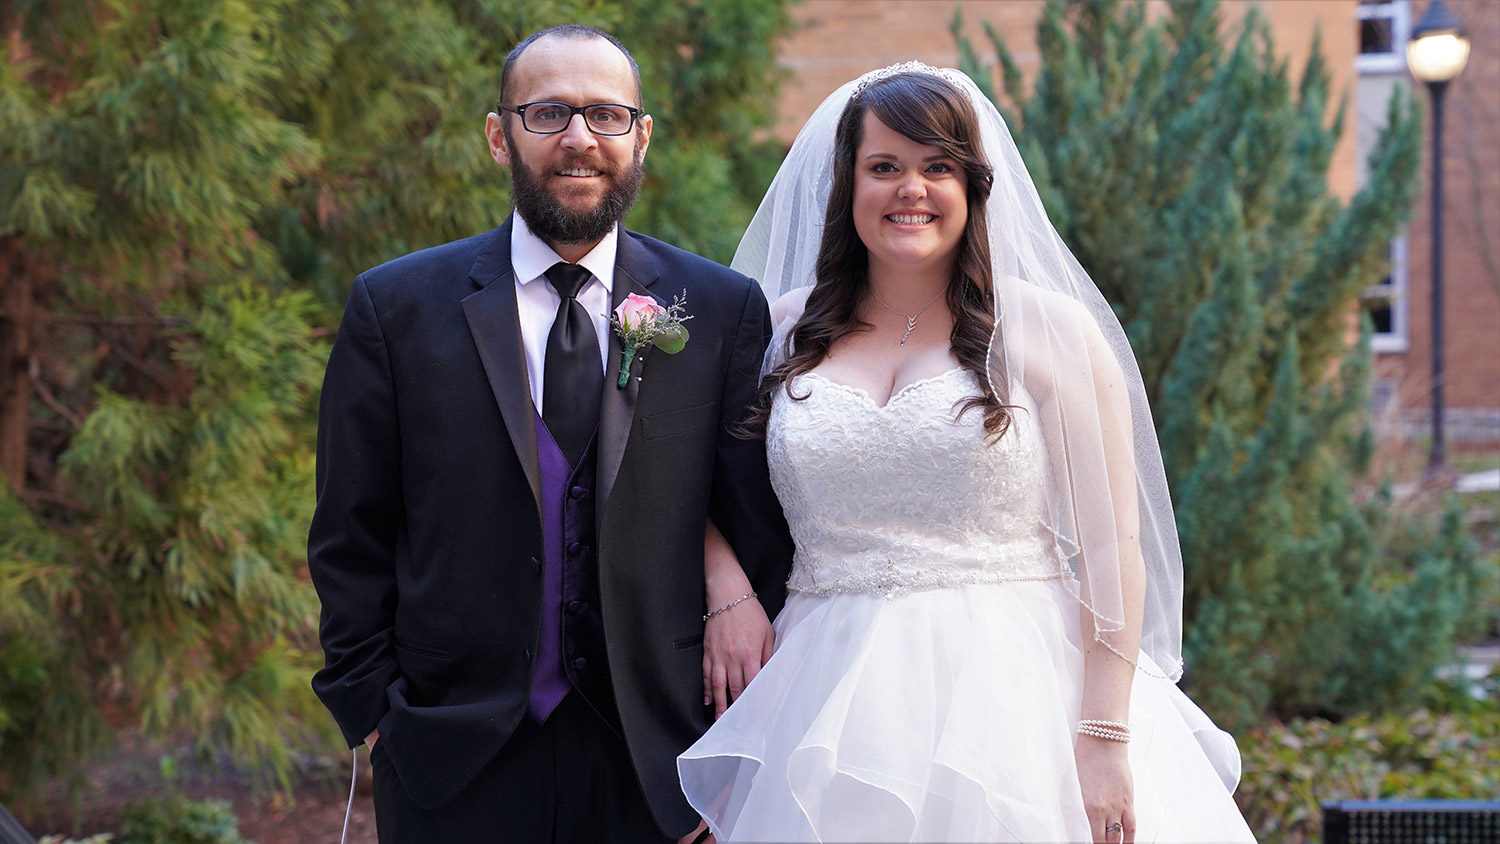 Wedding for Terminally Ill Patient